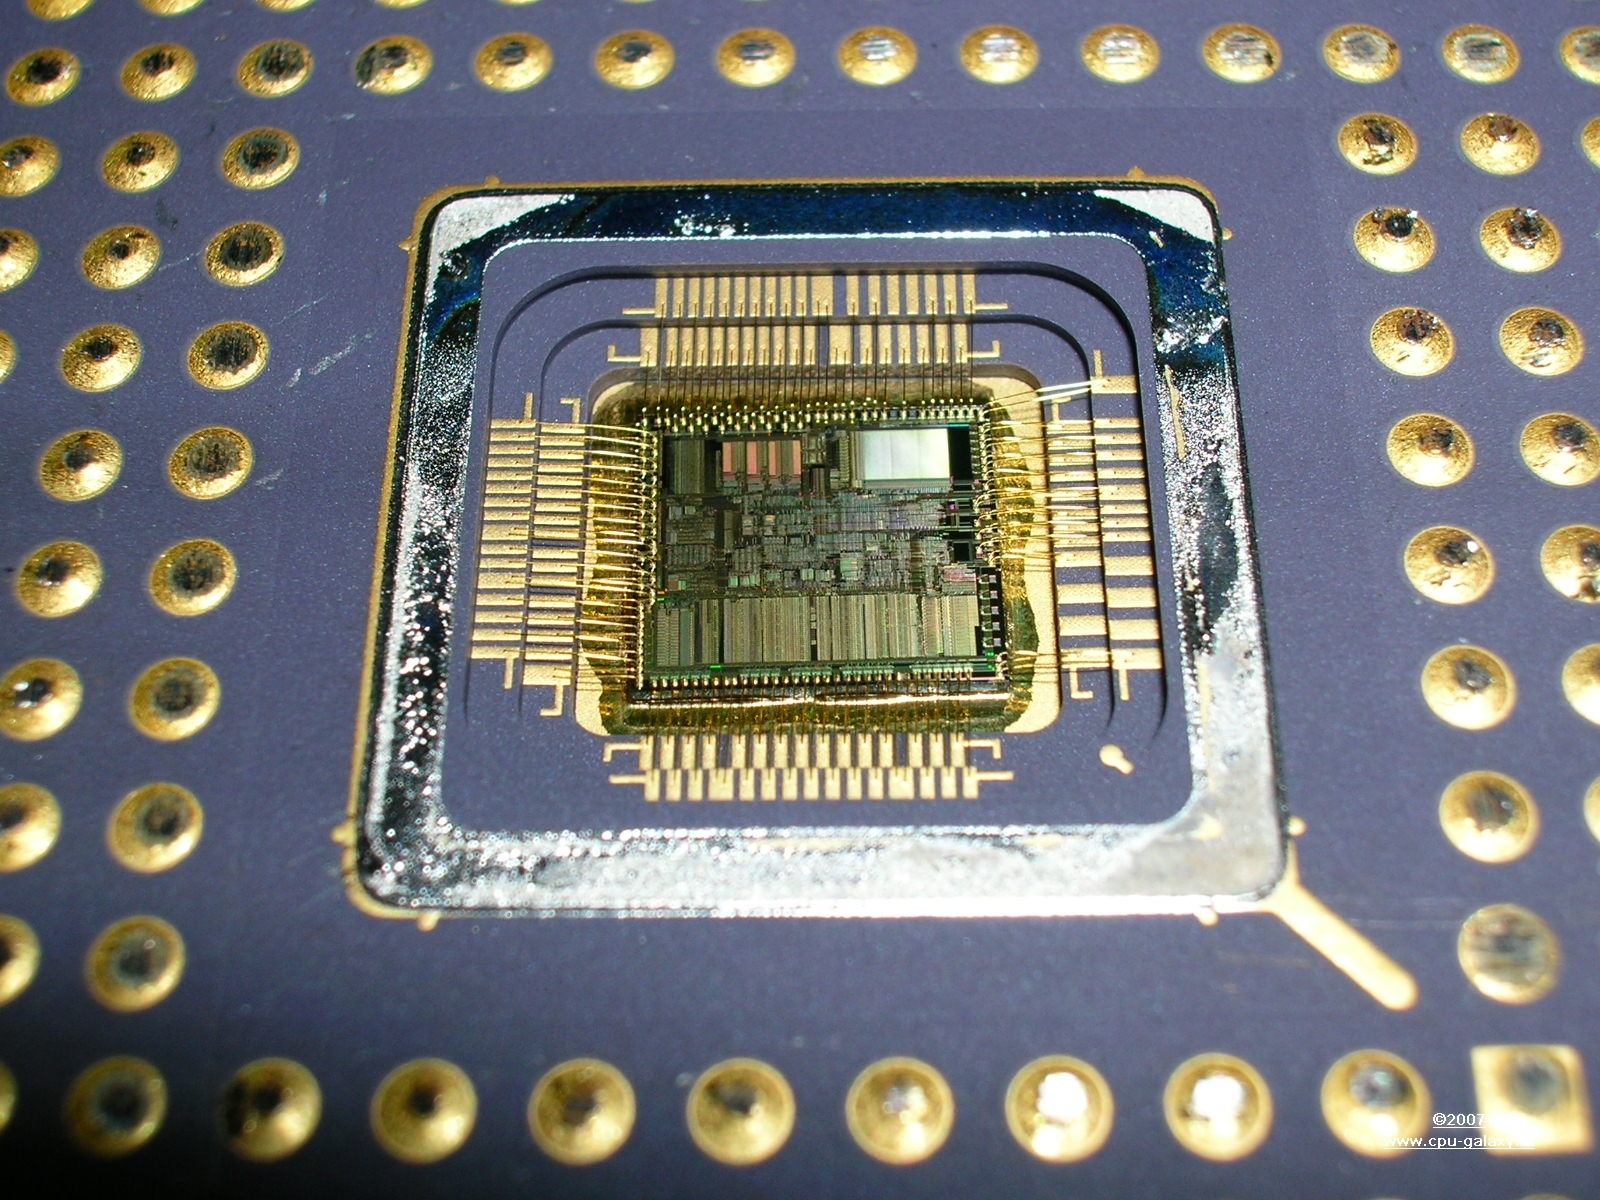 Articles Of Cpu Galaxy At